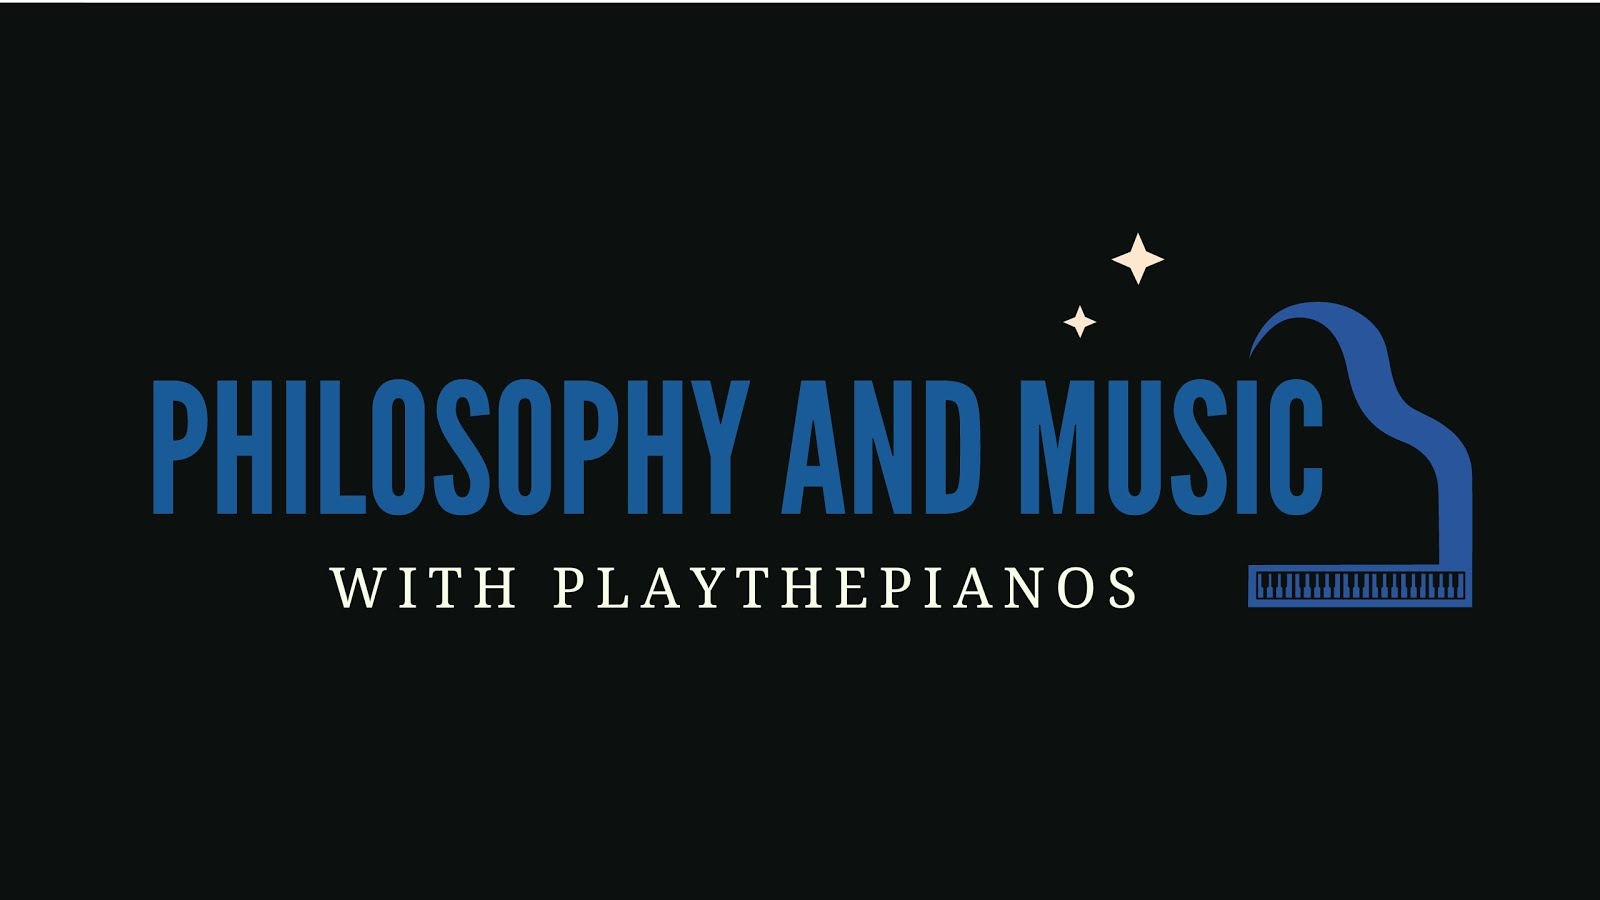 Philosophy and Music with Playthepianos